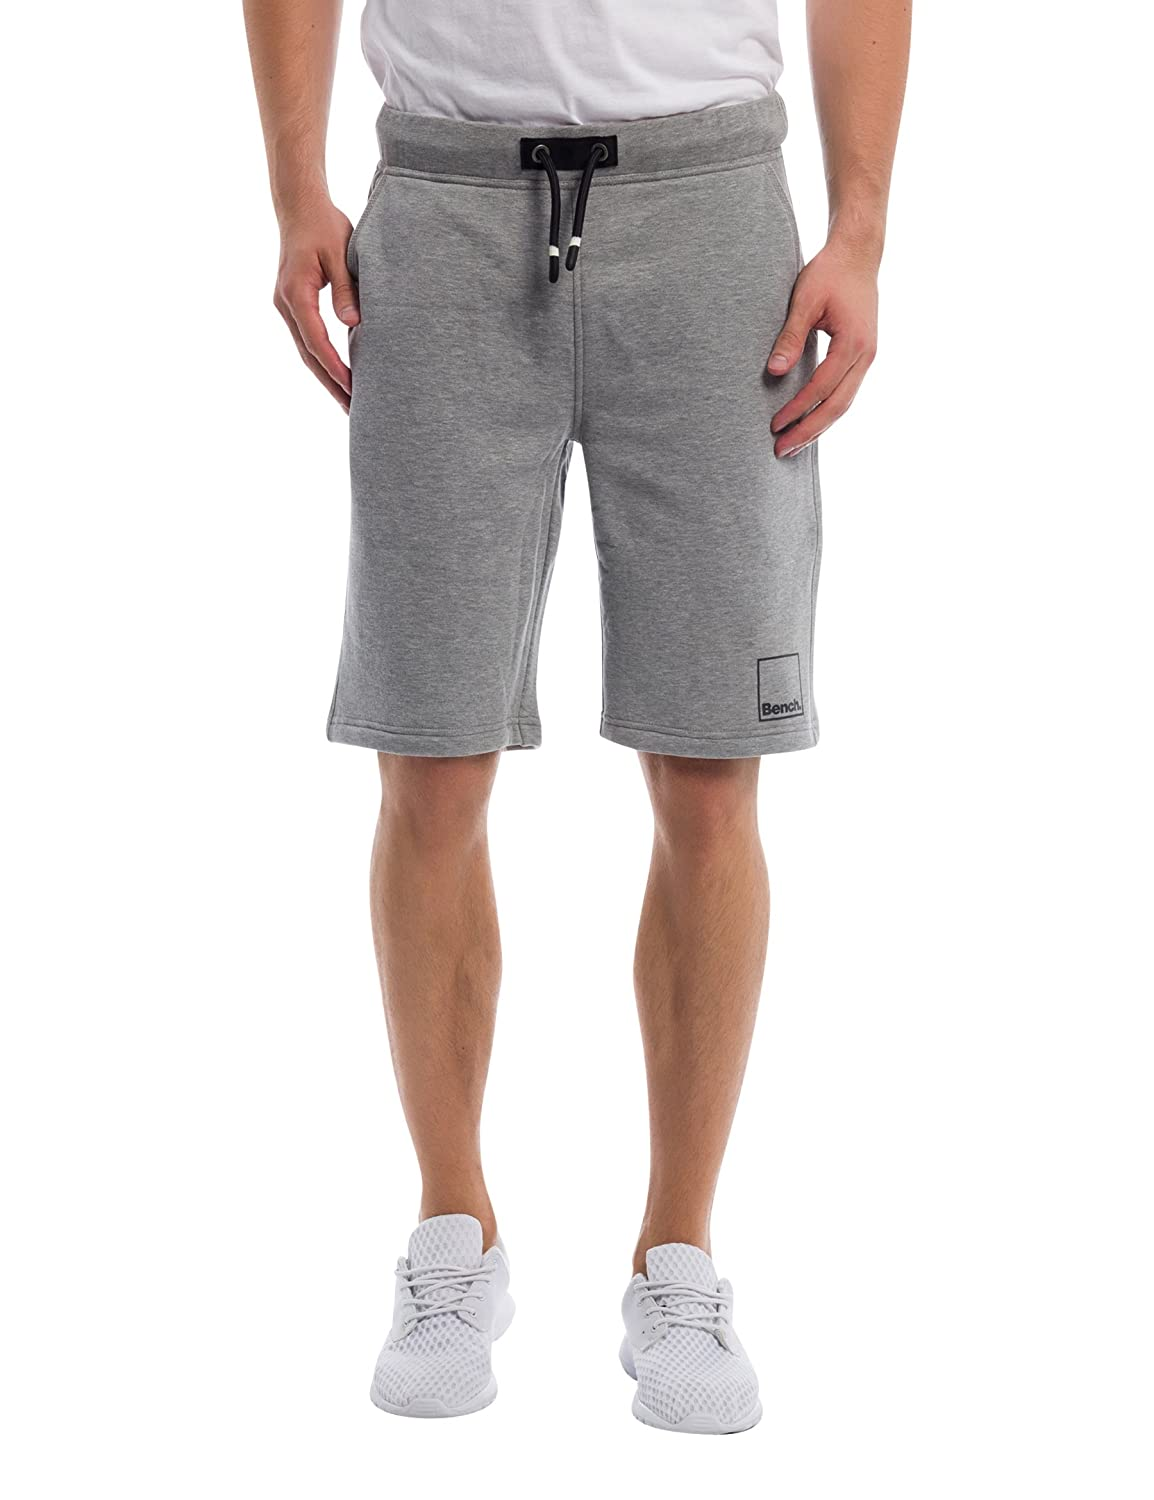 Bench Herren Sportshorts Leisure Short